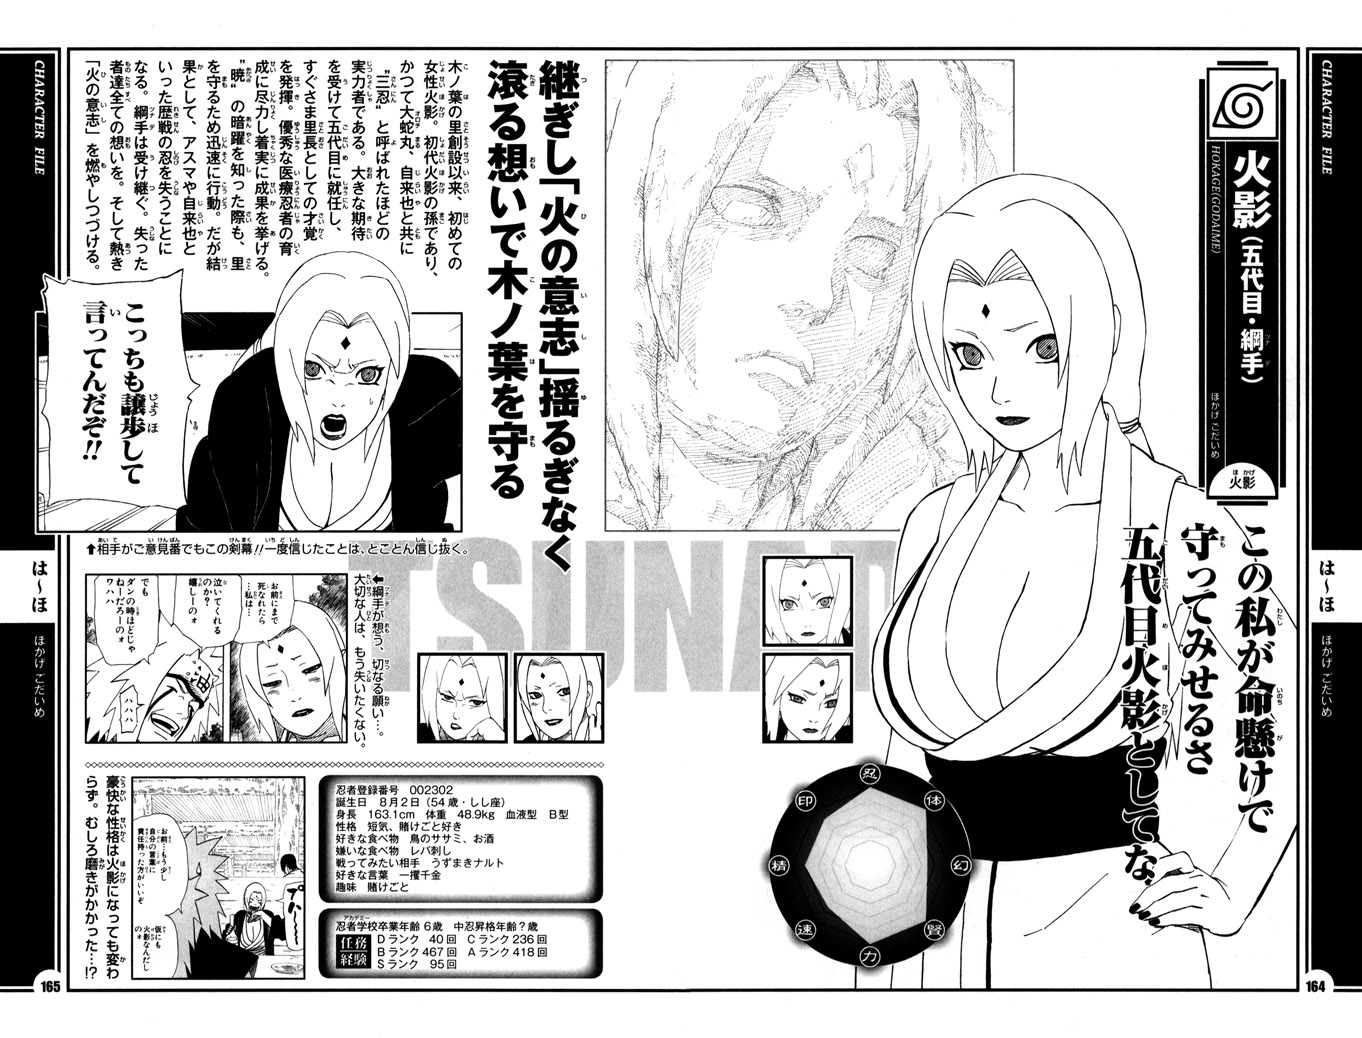 Madara cut tsunade in half